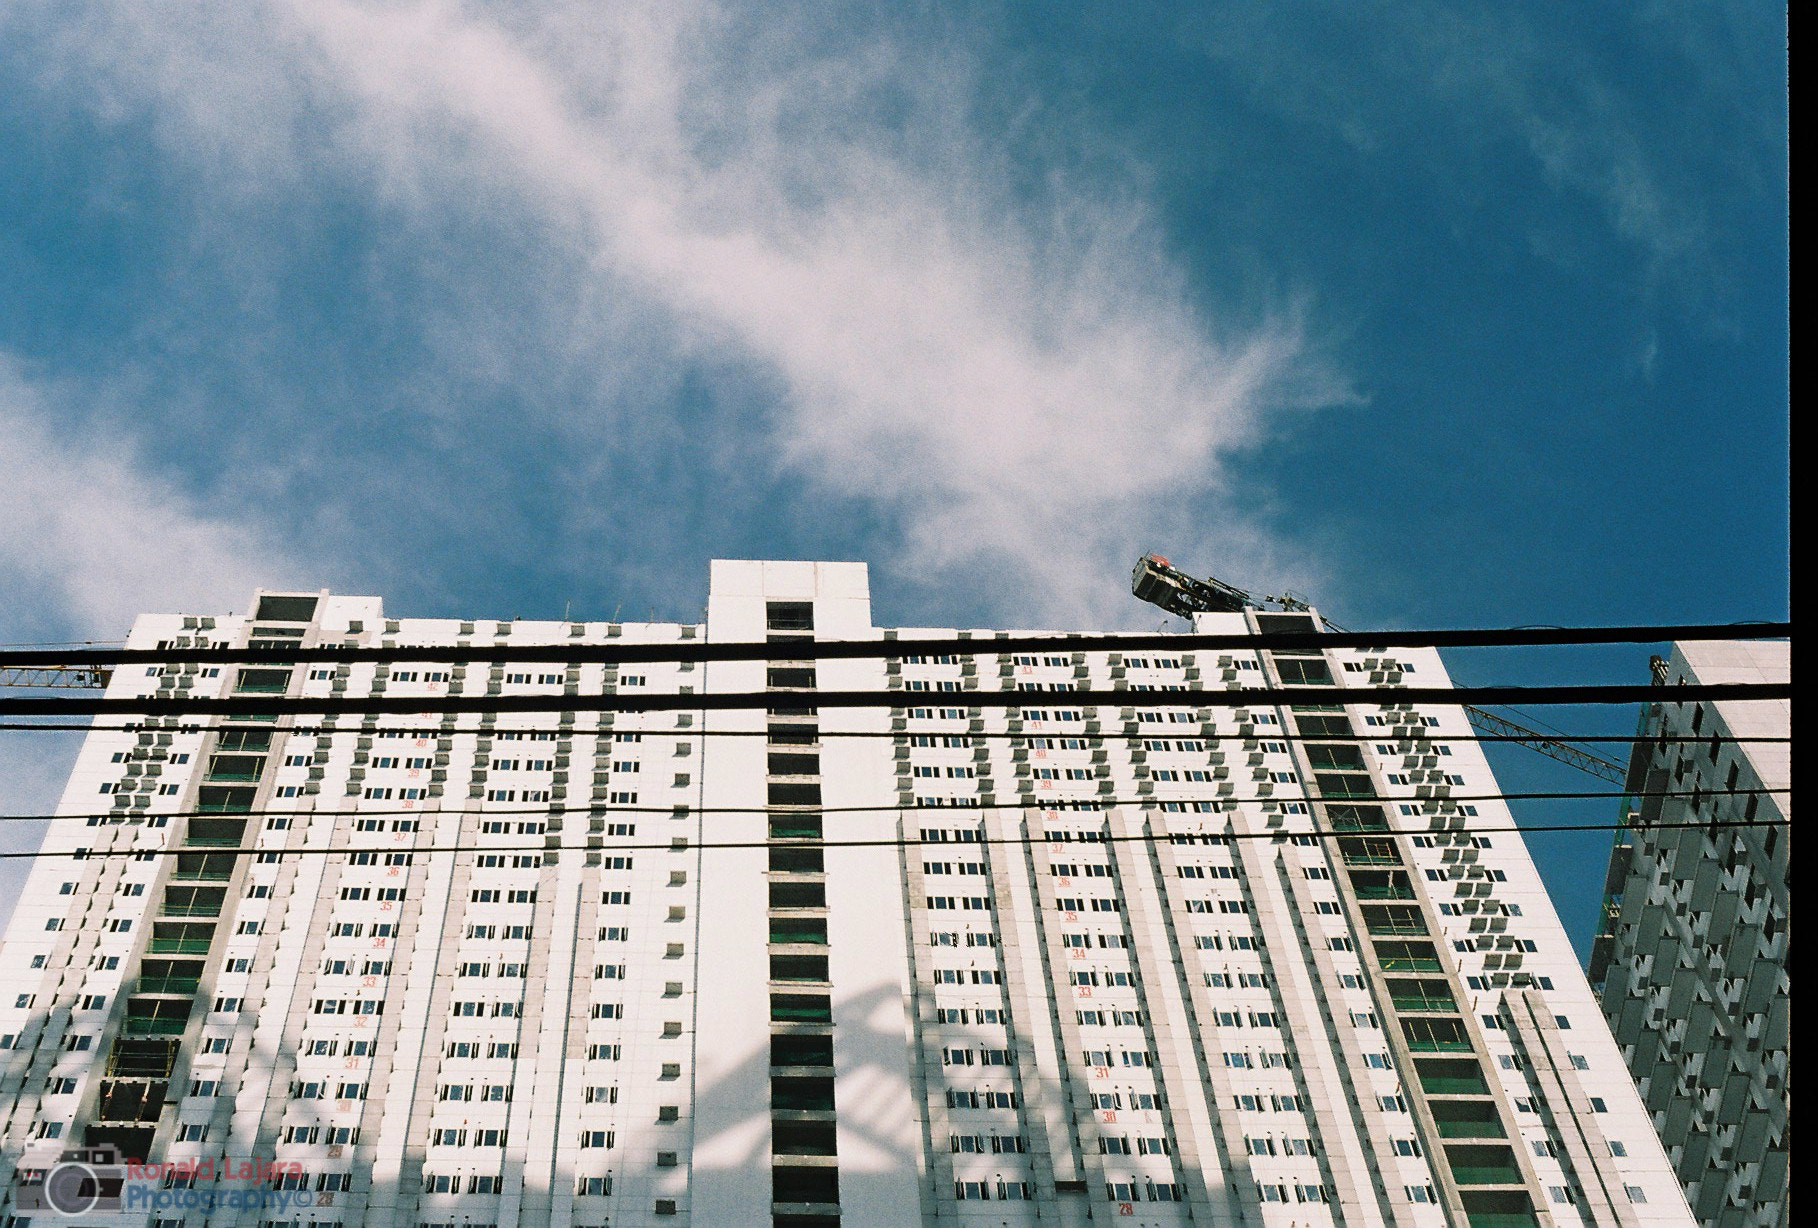 Photograph Architecture by Ronald Carlo Lajara on 500px